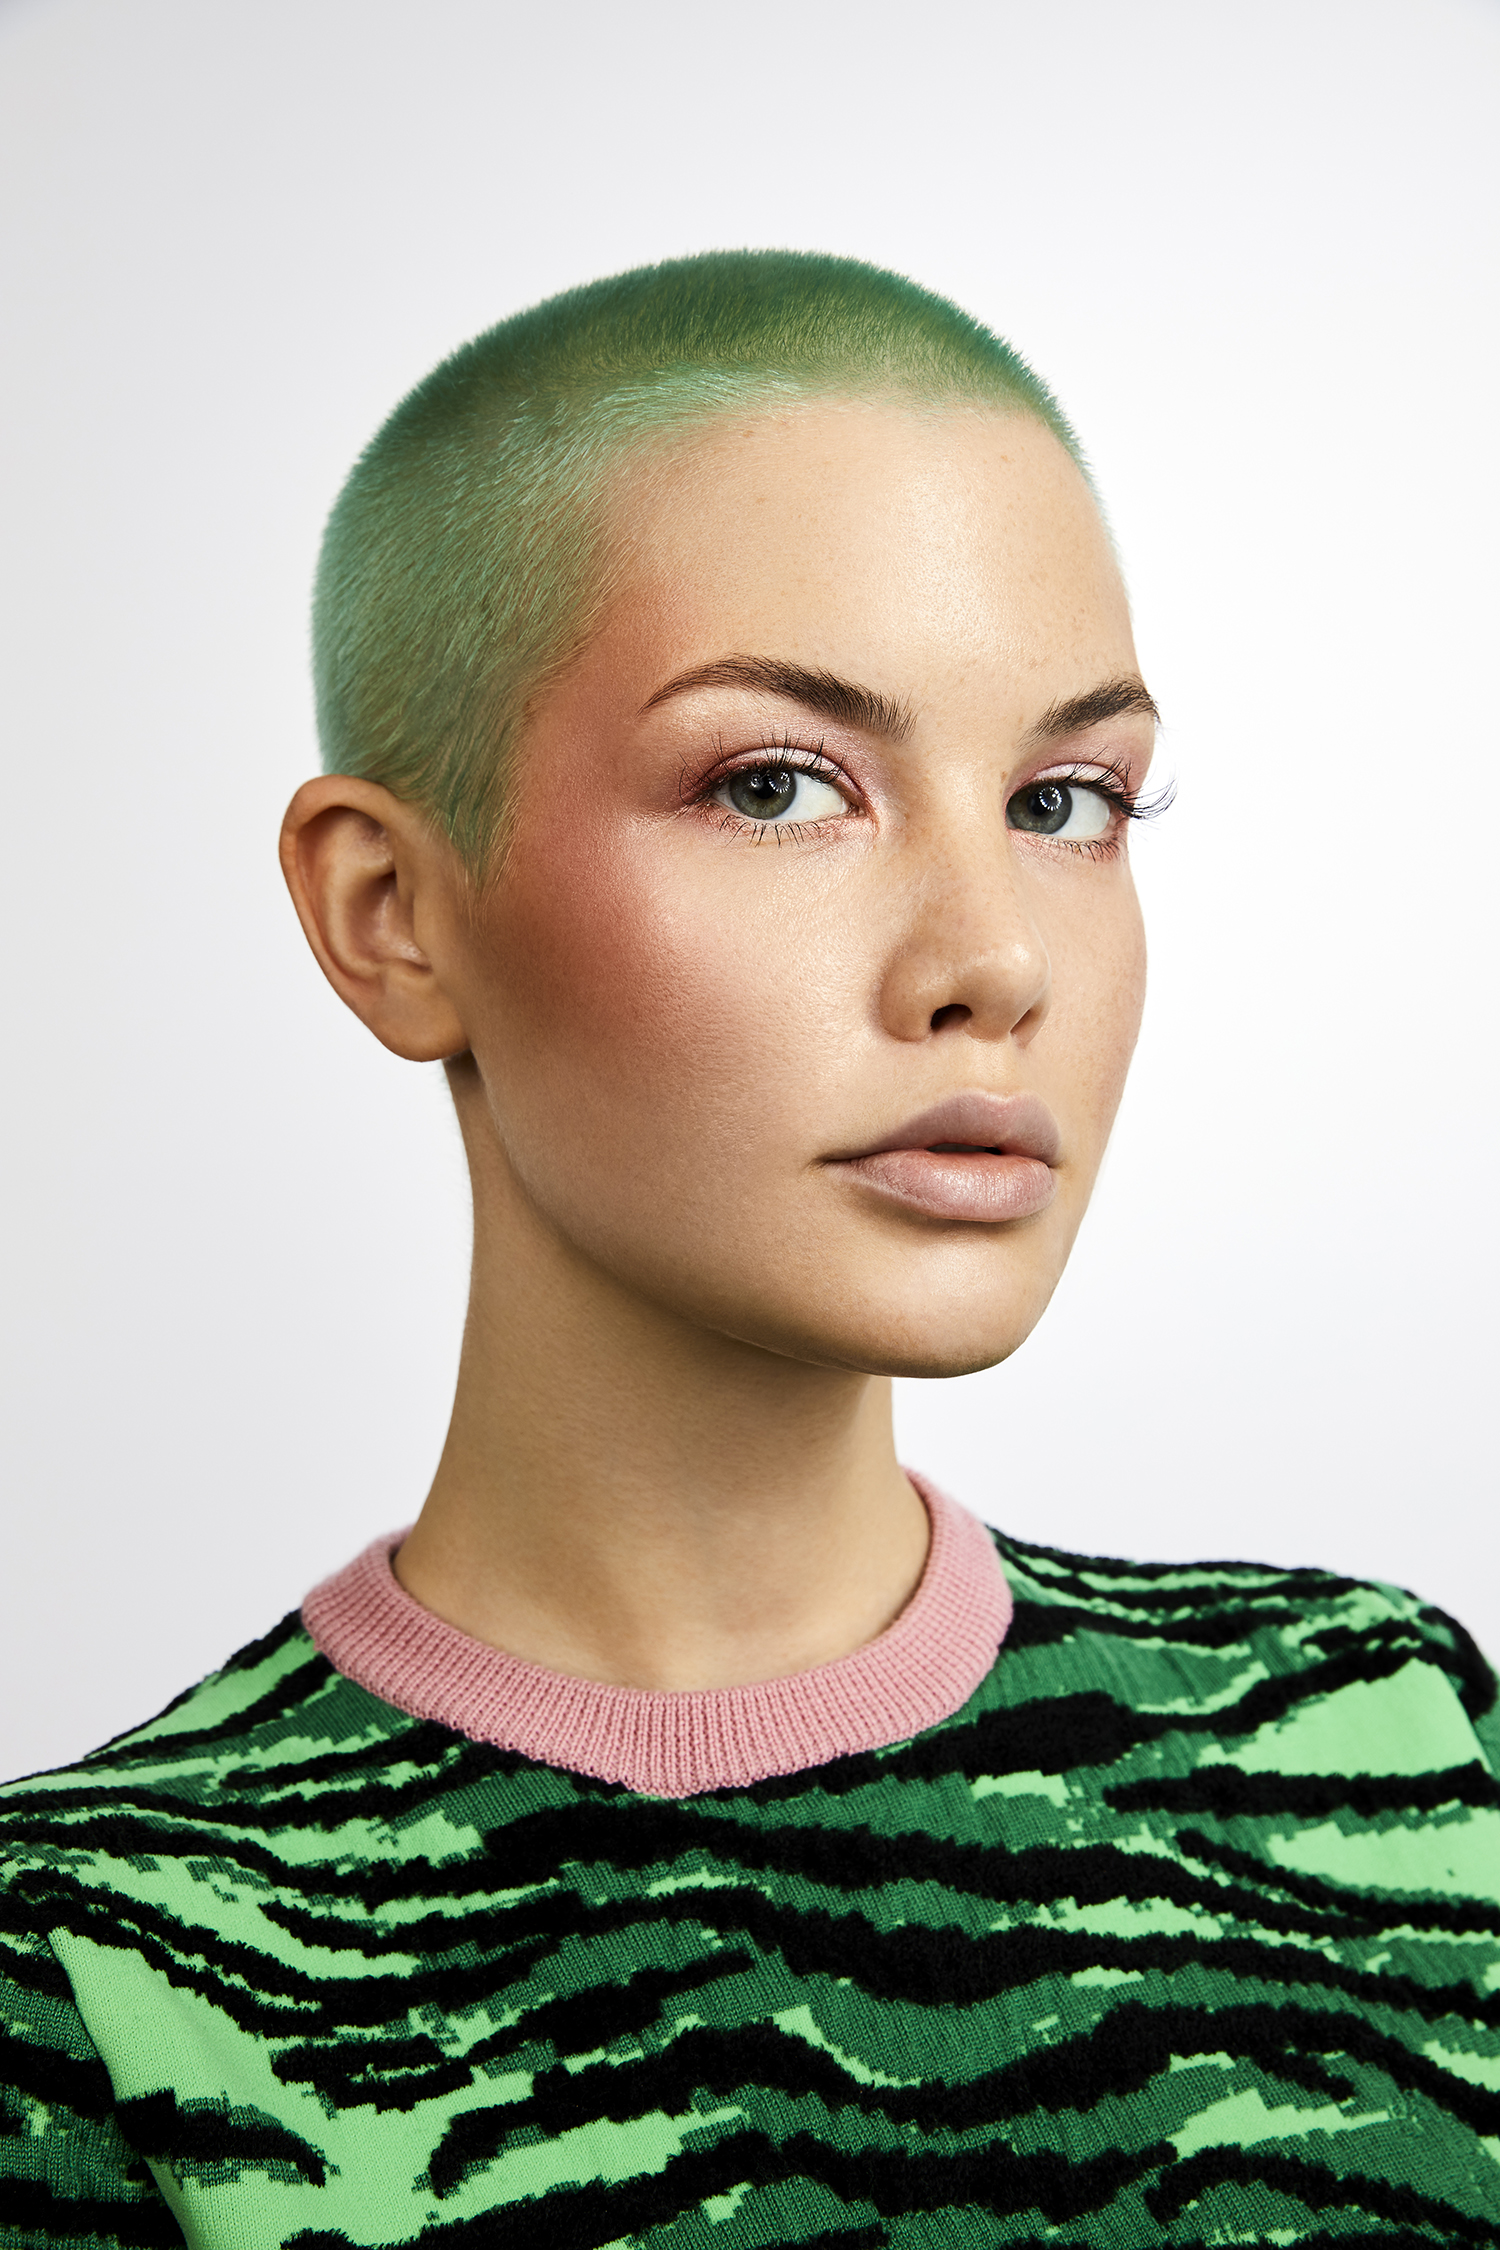 trendcollection+2019+green+hair+short+buzzcut+rasiert+model+blogger+berlin+felix+rachor+vienna+ginger+lemon+bester+friseur+wien+damen+ahda+pulp+riot+olaplex+buzzcut+shorthair+kurzhaar+farbexperte+dvt+ginger+lemon.jpg